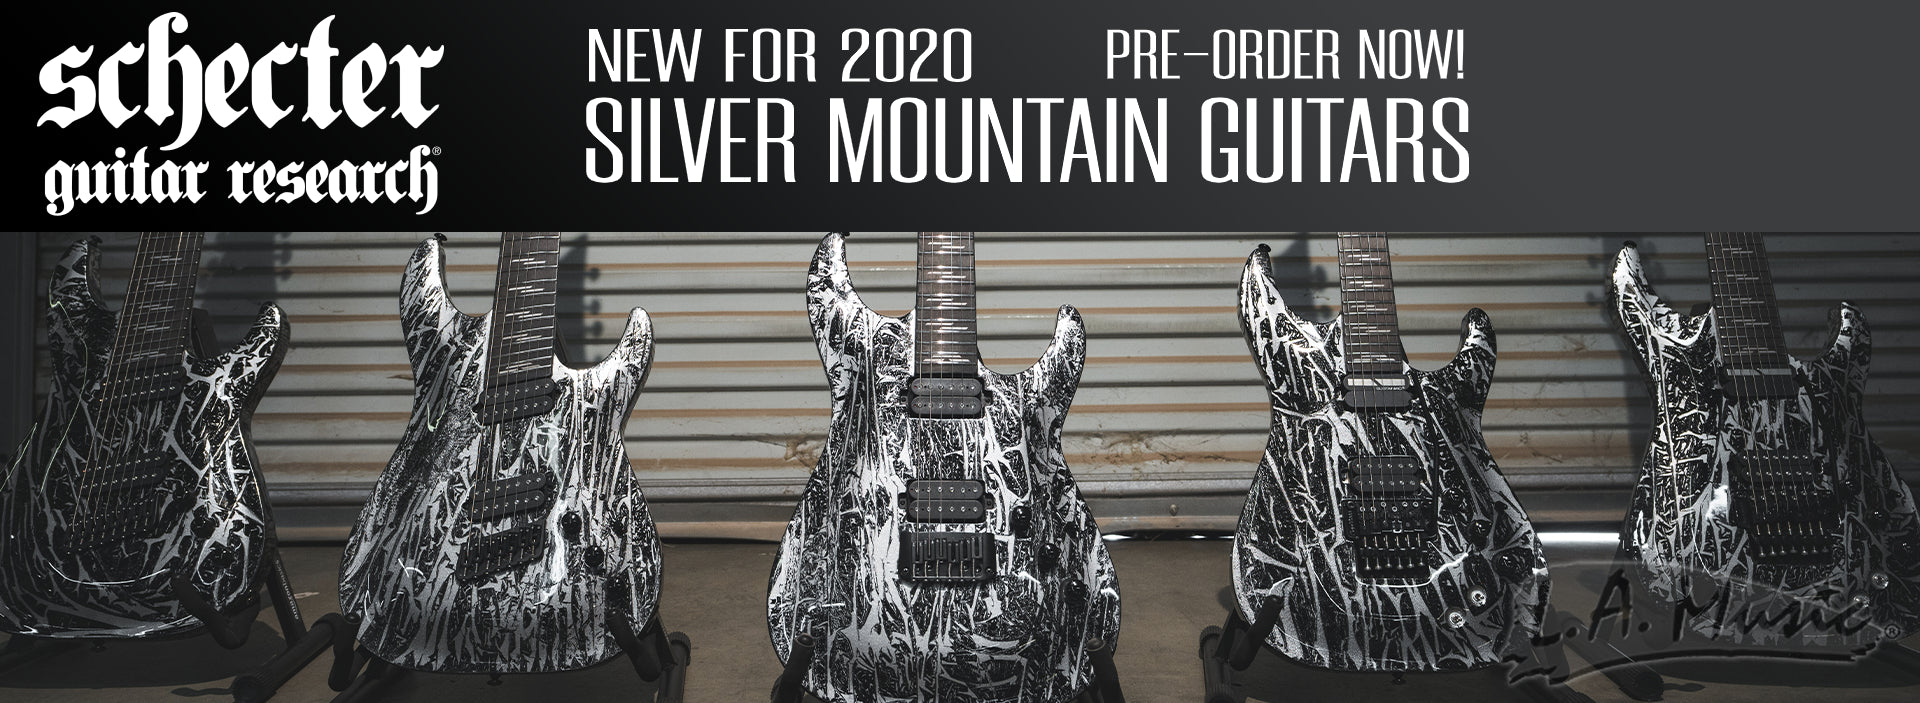 Schecter Silver Mountain Guitars New for 2020